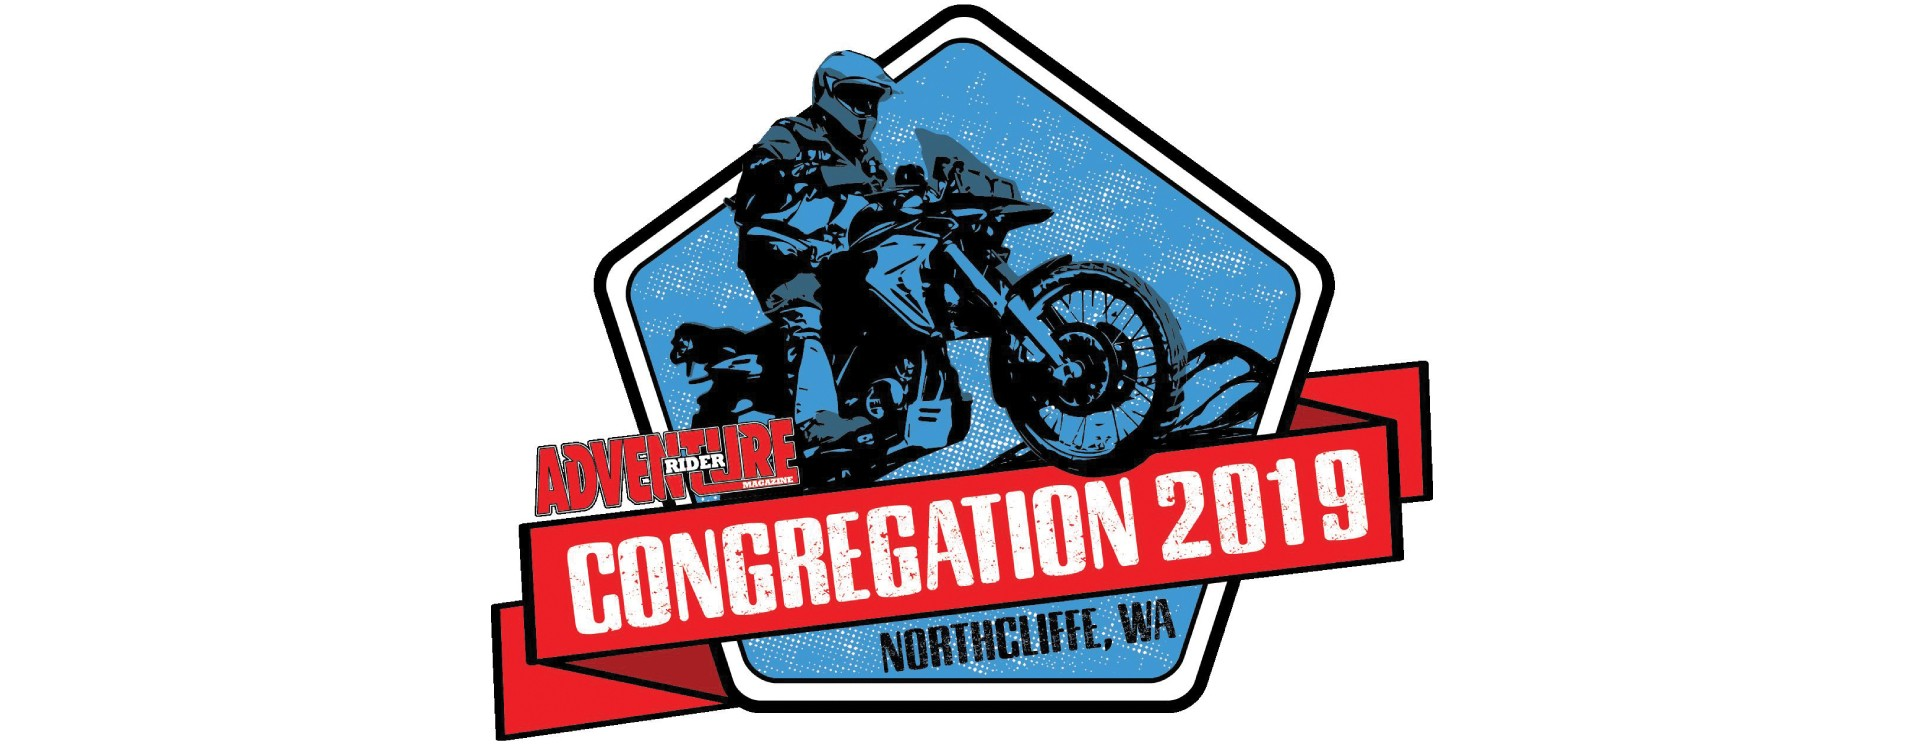 2019 WA ADVENTURE RIDER MAGAZINE CONGREGATION UPDATE